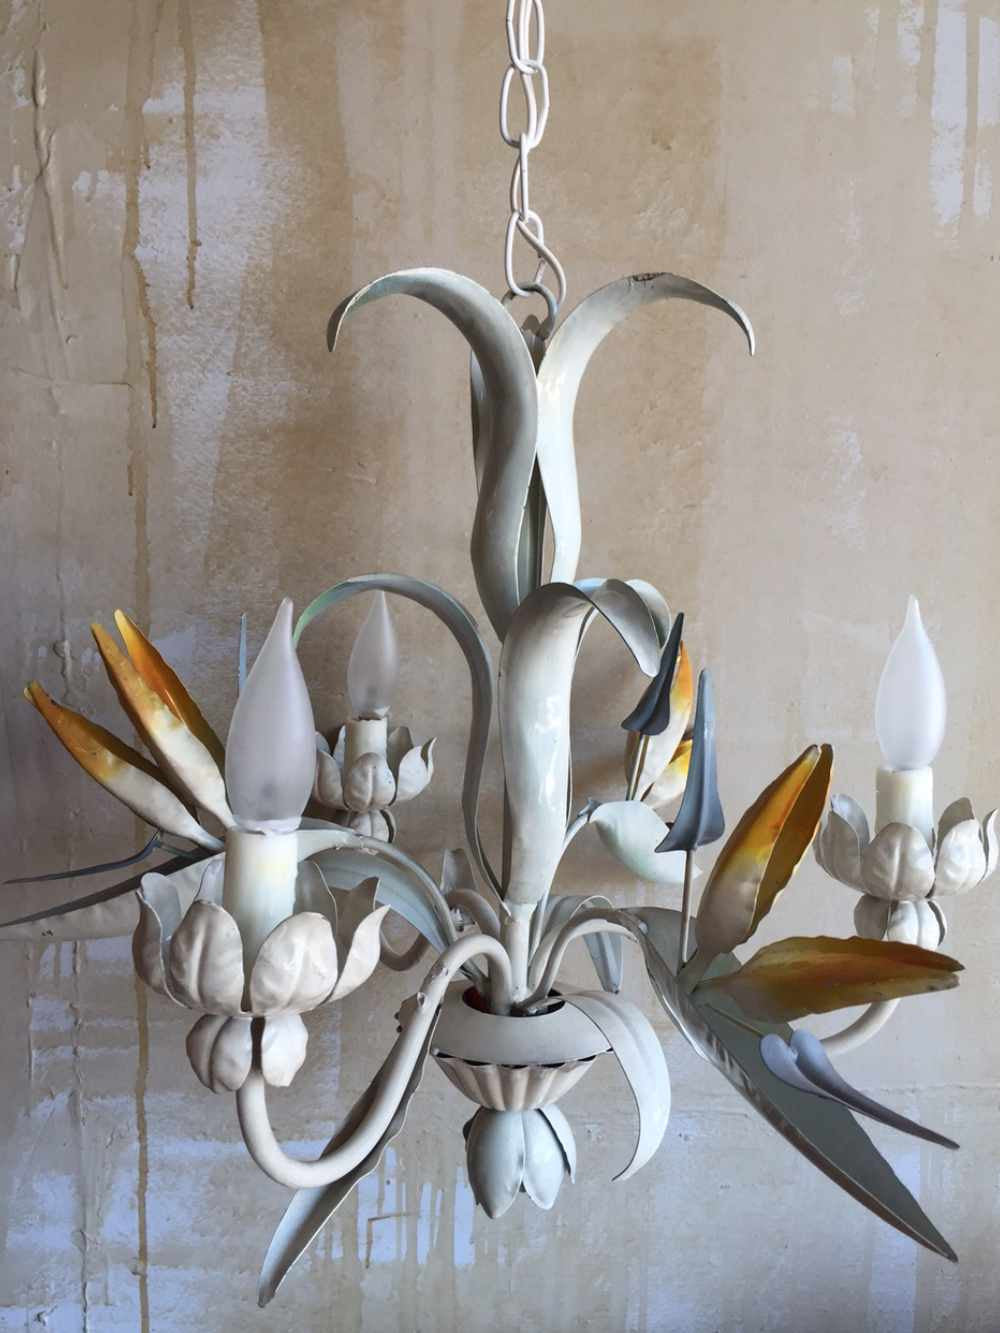 ... Vintage Tole Chandelier with Bird of Paradise - Mercato Antiques - 2 ... - SOLD)Vintage Tole Chandelier With Bird Of Paradise